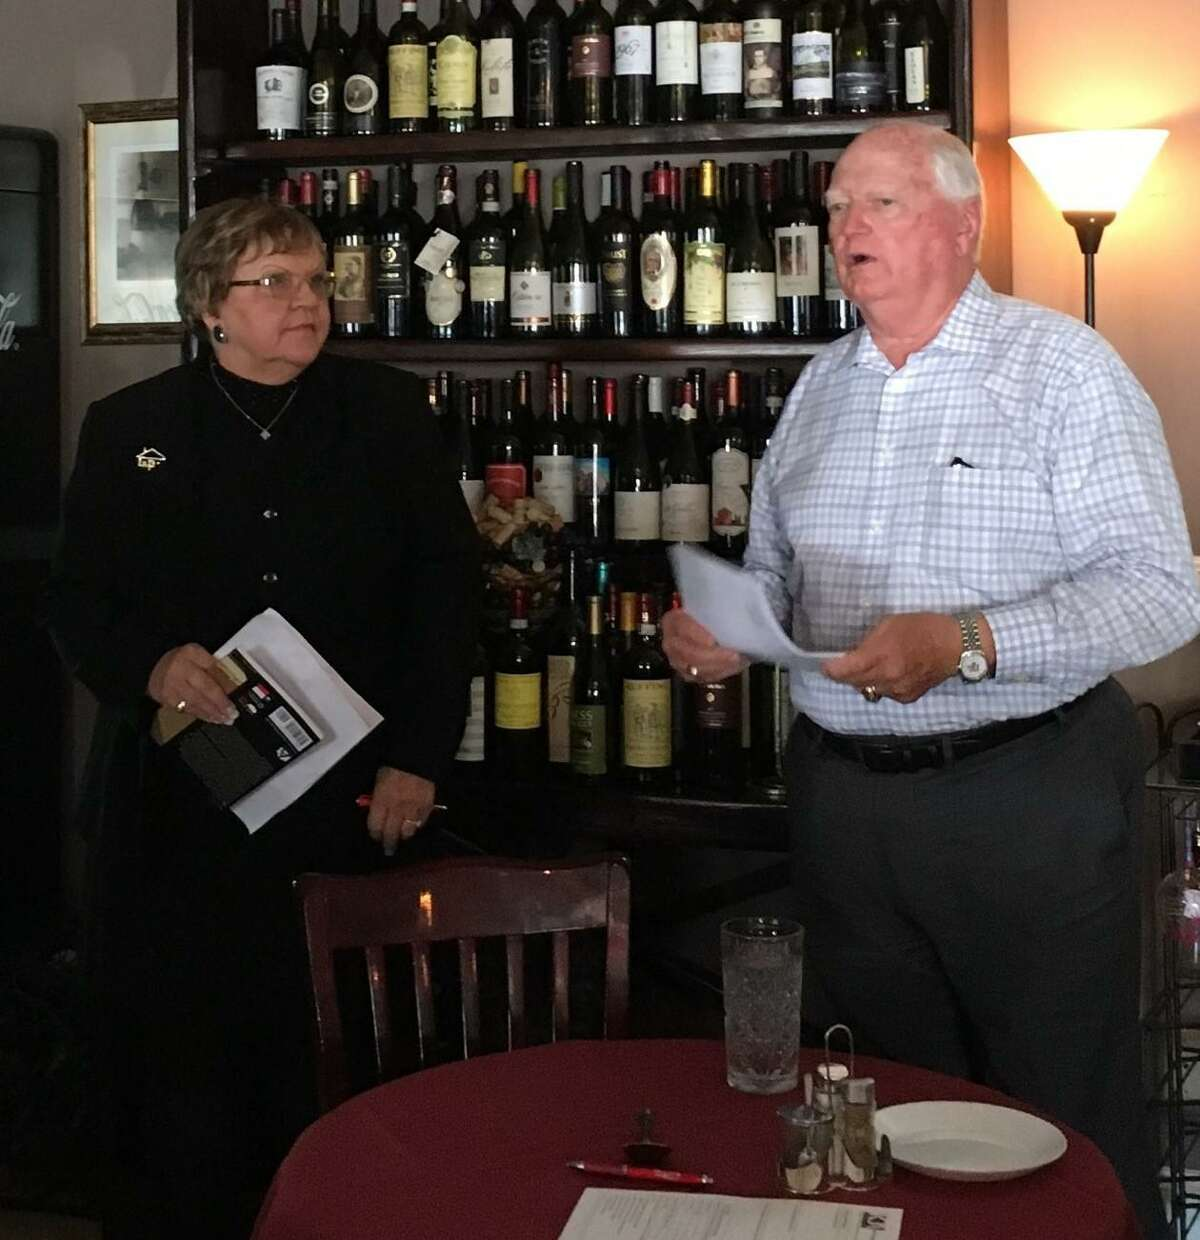 Don Elder Jr., second vice chair of the Metropolitan Transit Authority board of directors, spoke about Metro's $3.5 billion bond on the Nov. 5 ballot to members of the Katy Business Association. At left is Clara Jean Machann, KBA president.